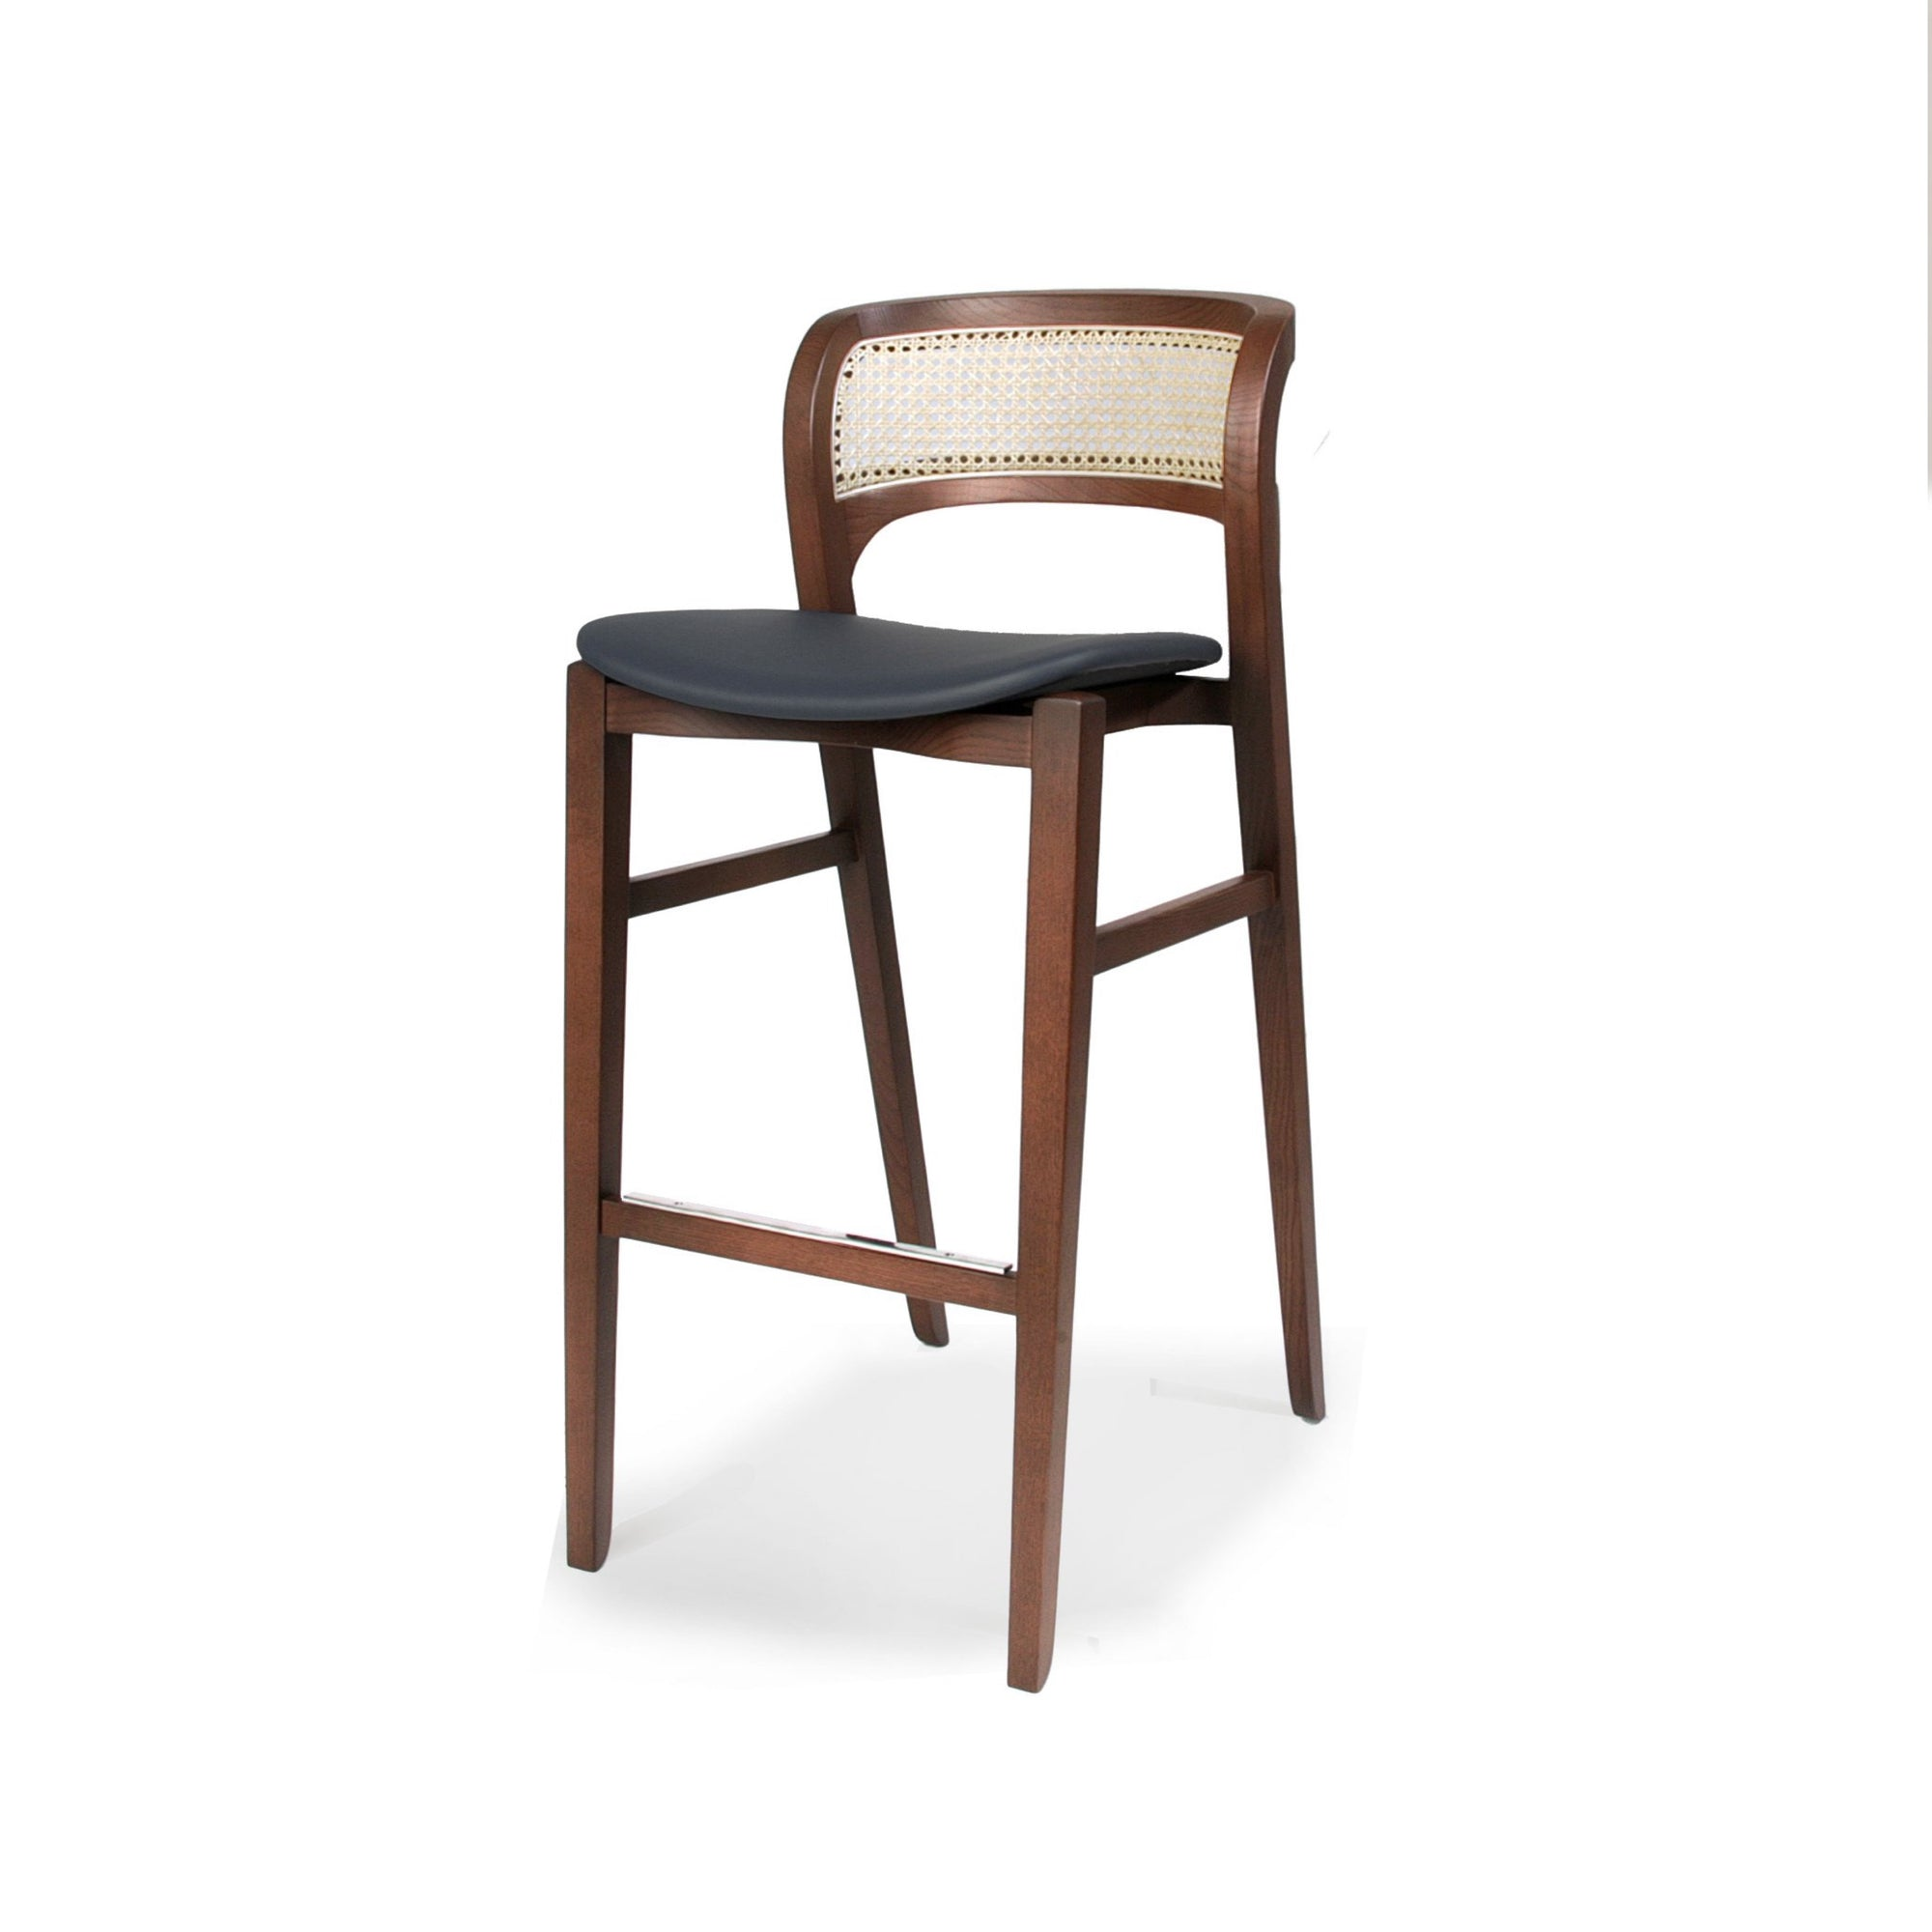 Nemesis High Stool-X8-Contract Furniture Store